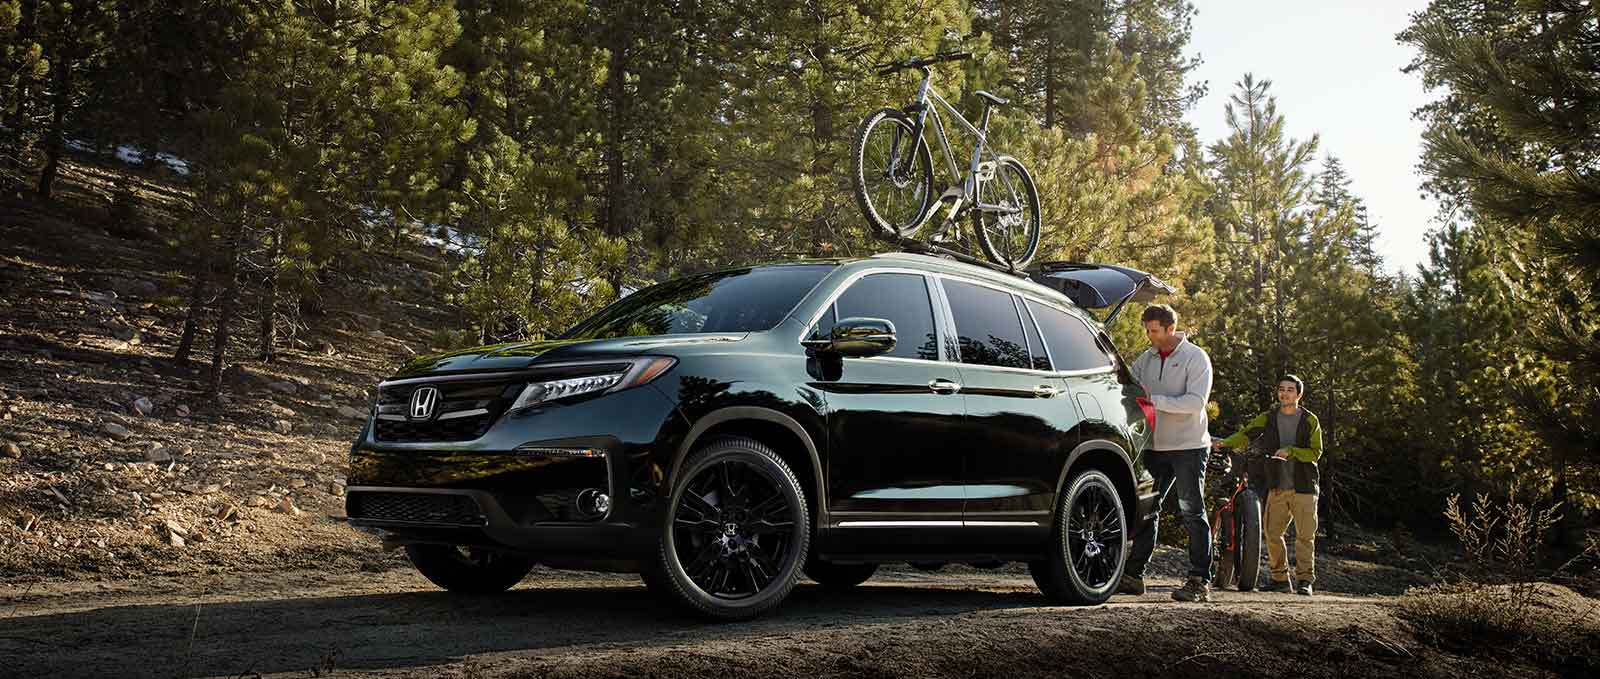 Honda Crossover Model Exterior Lifestyle Photo